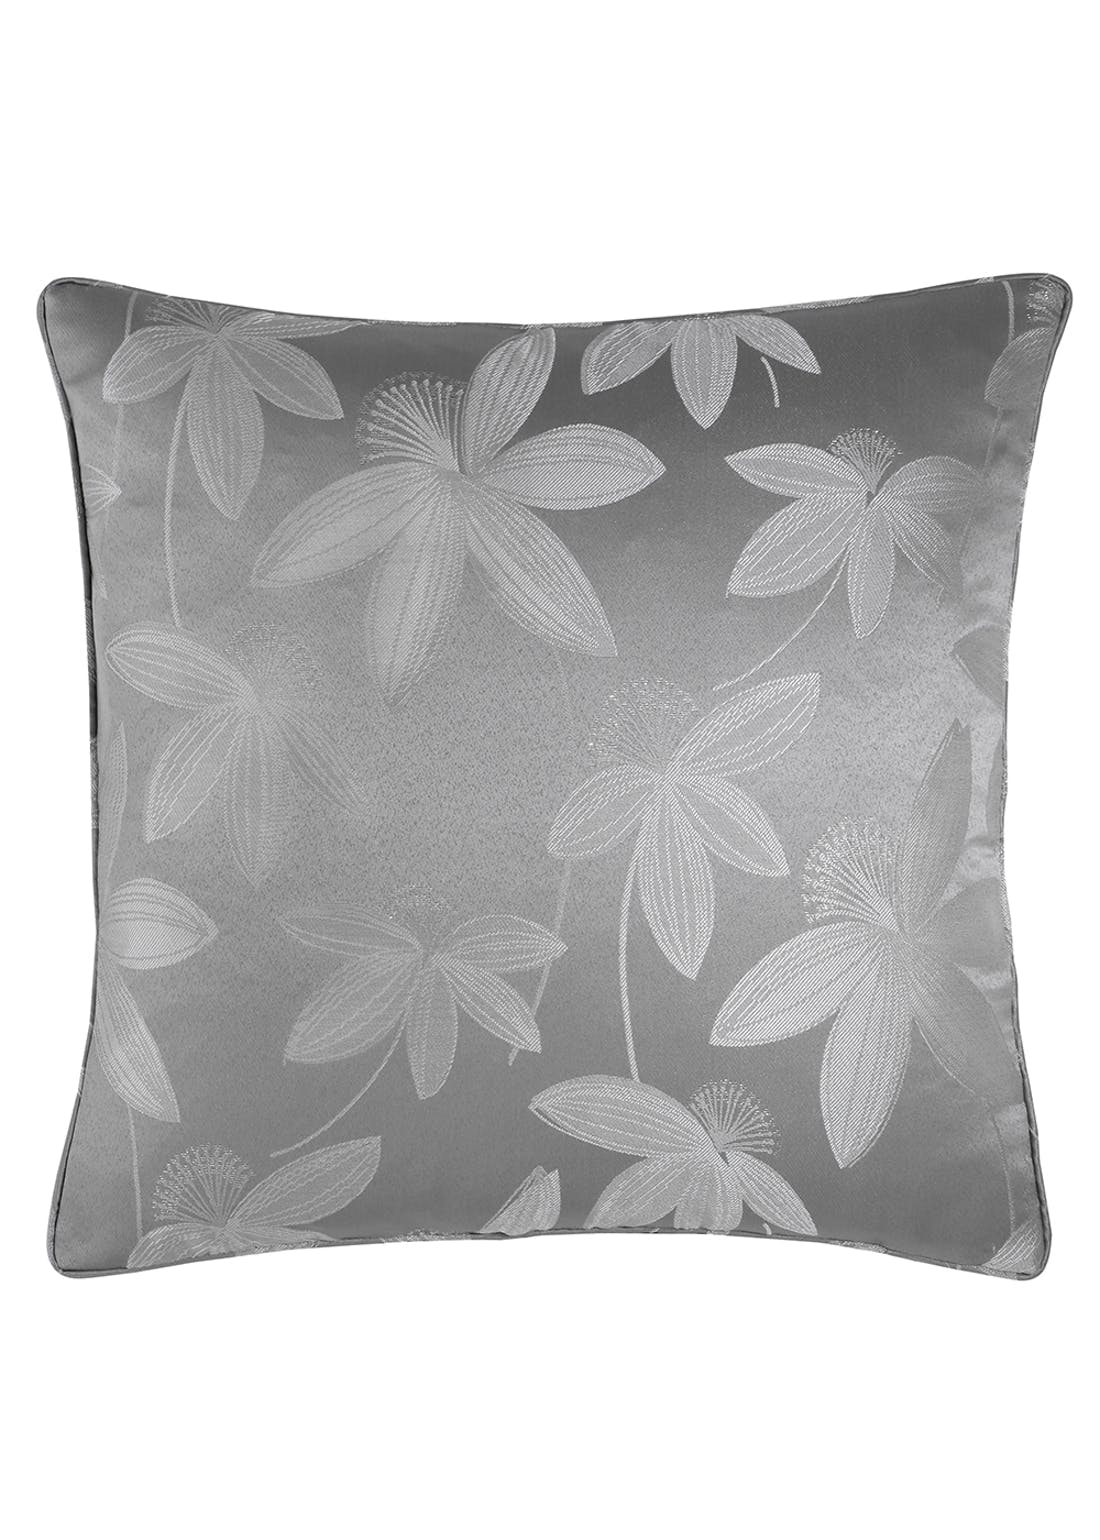 Curtina Romolo Cushion (43cm x 43cm)